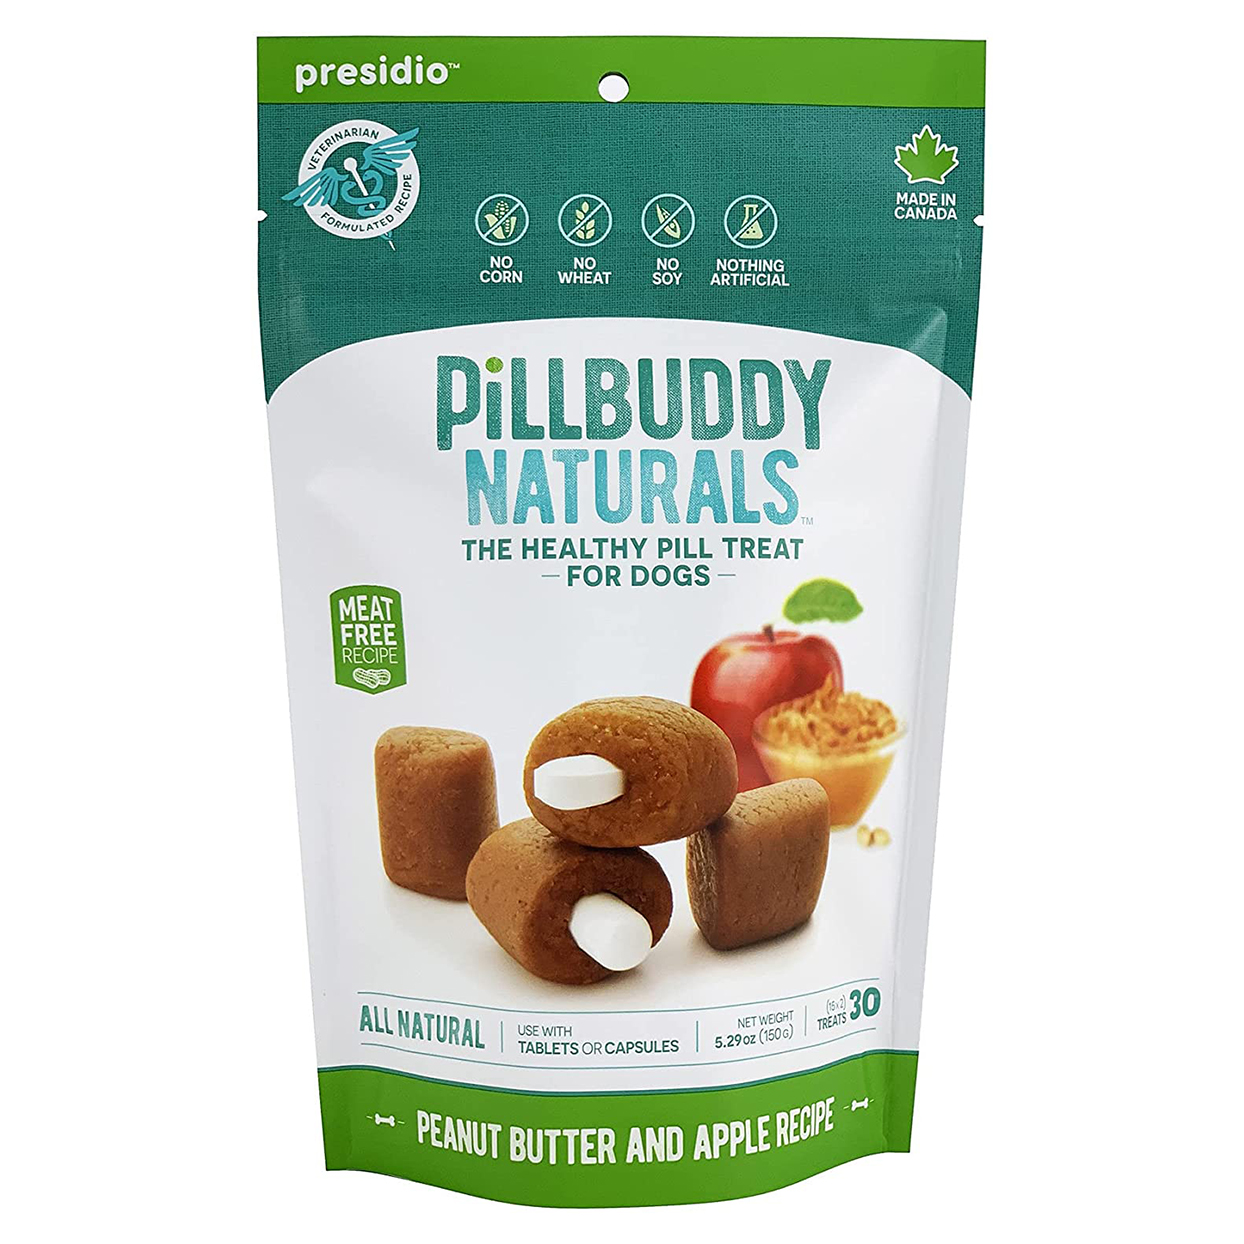 Bag of Pill Buddy Naturals in Peanut Butter and Apple on a white background